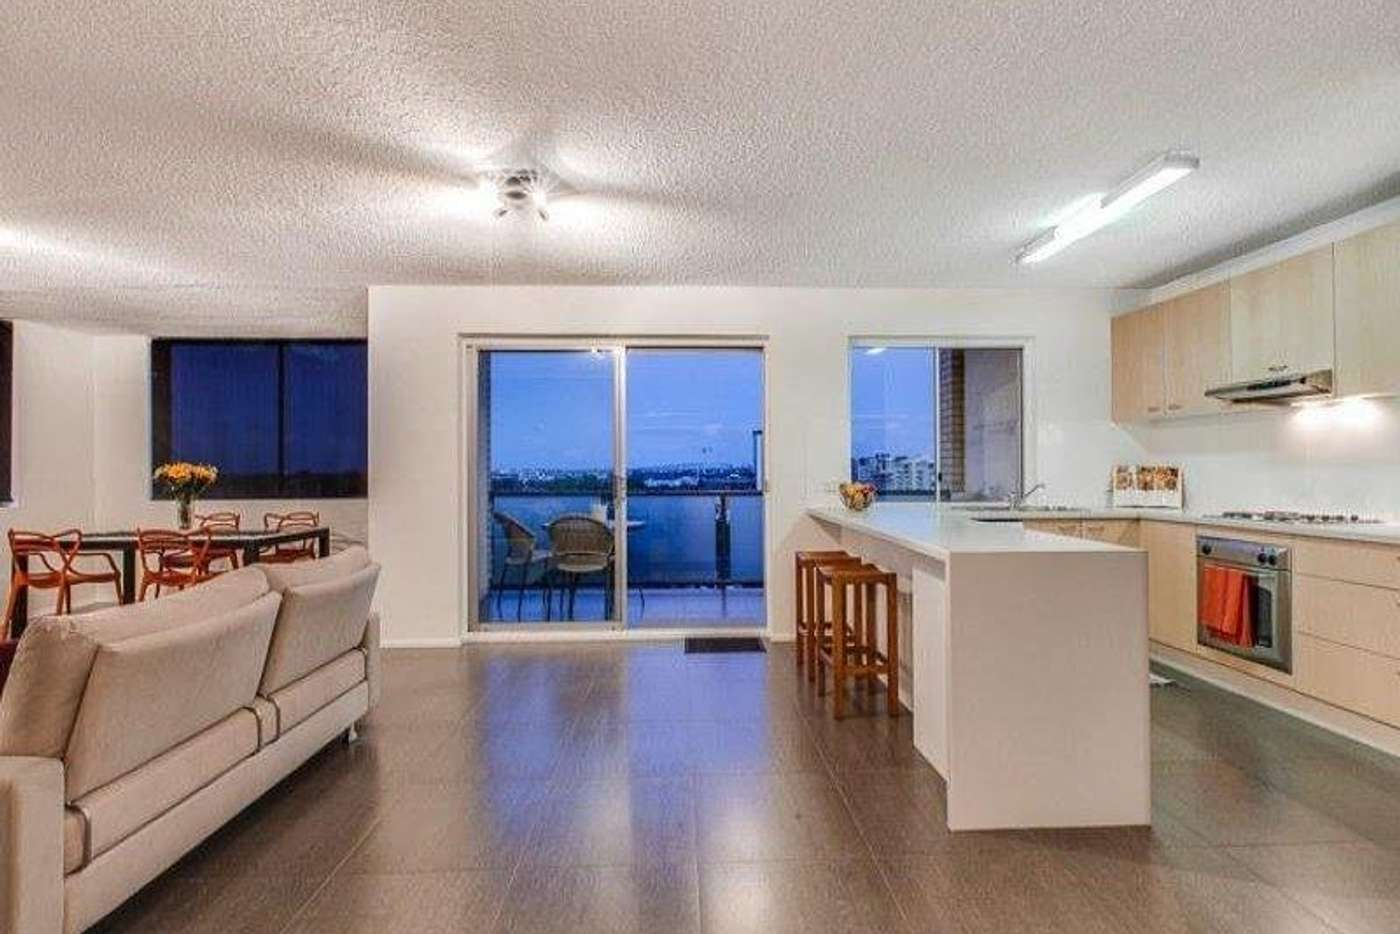 Main view of Homely apartment listing, 7/1 Rossiter Parade, Hamilton QLD 4007